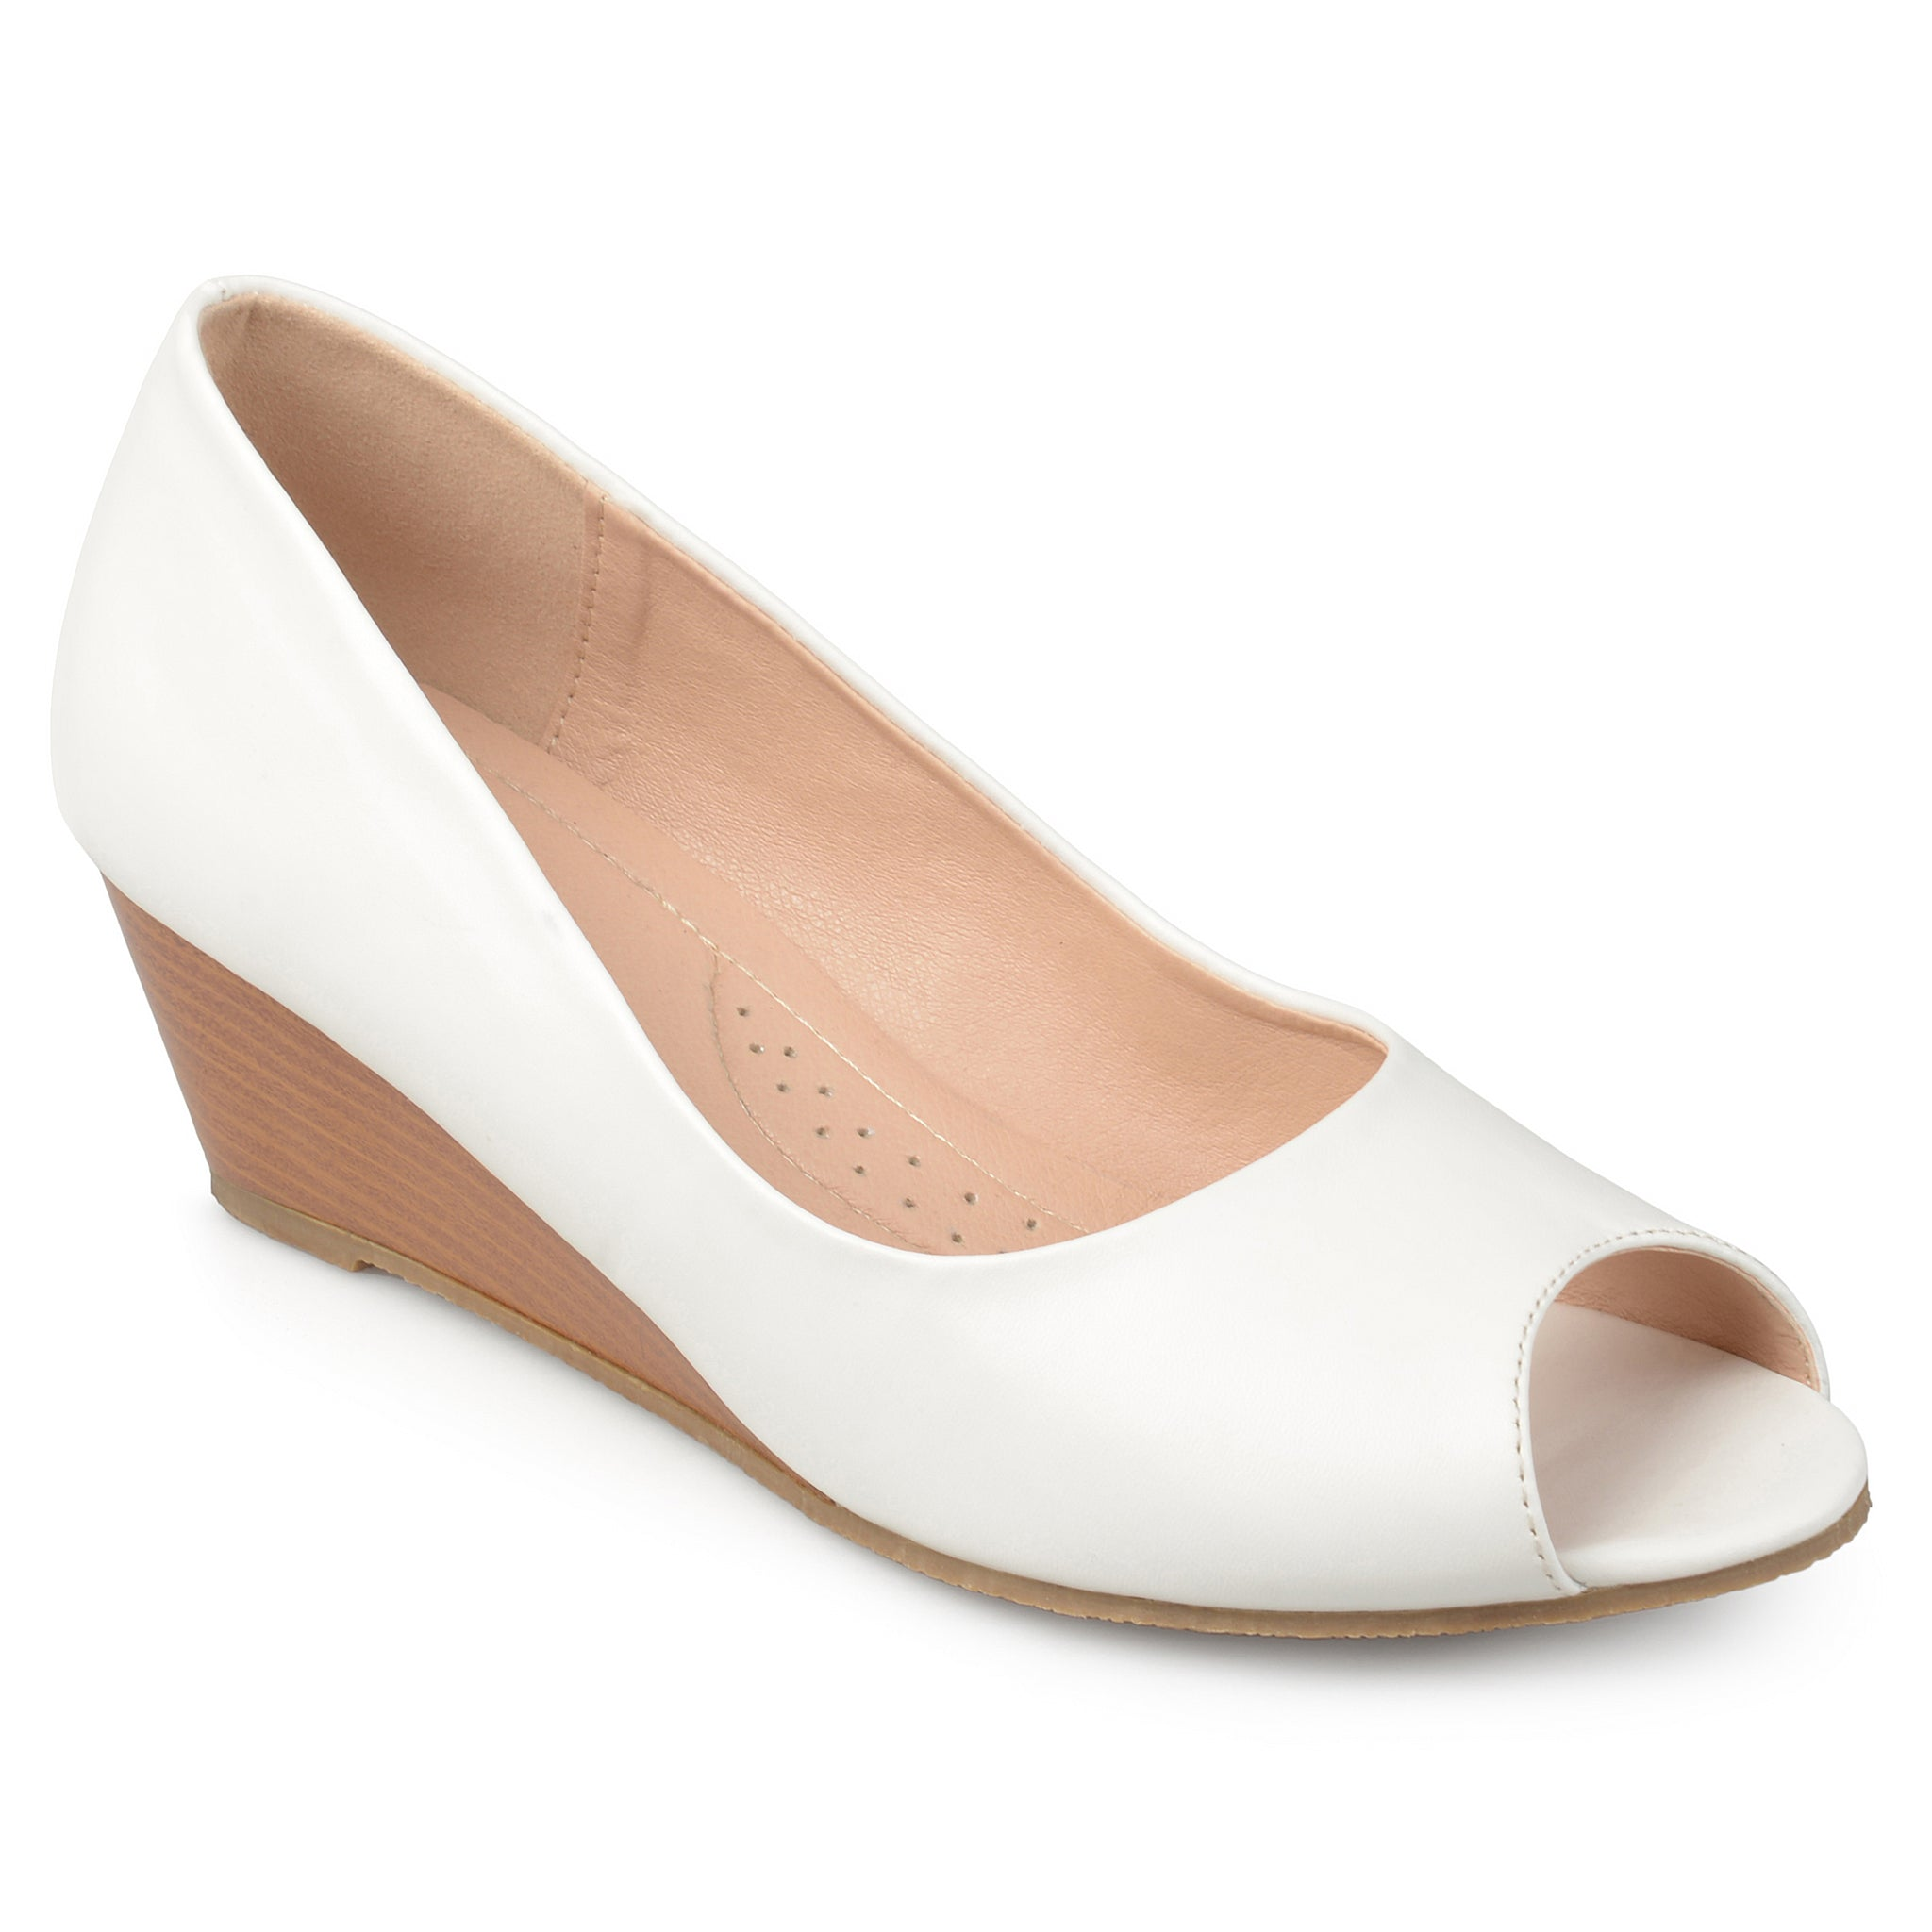 Peep-toe Comfort-sole Wedges